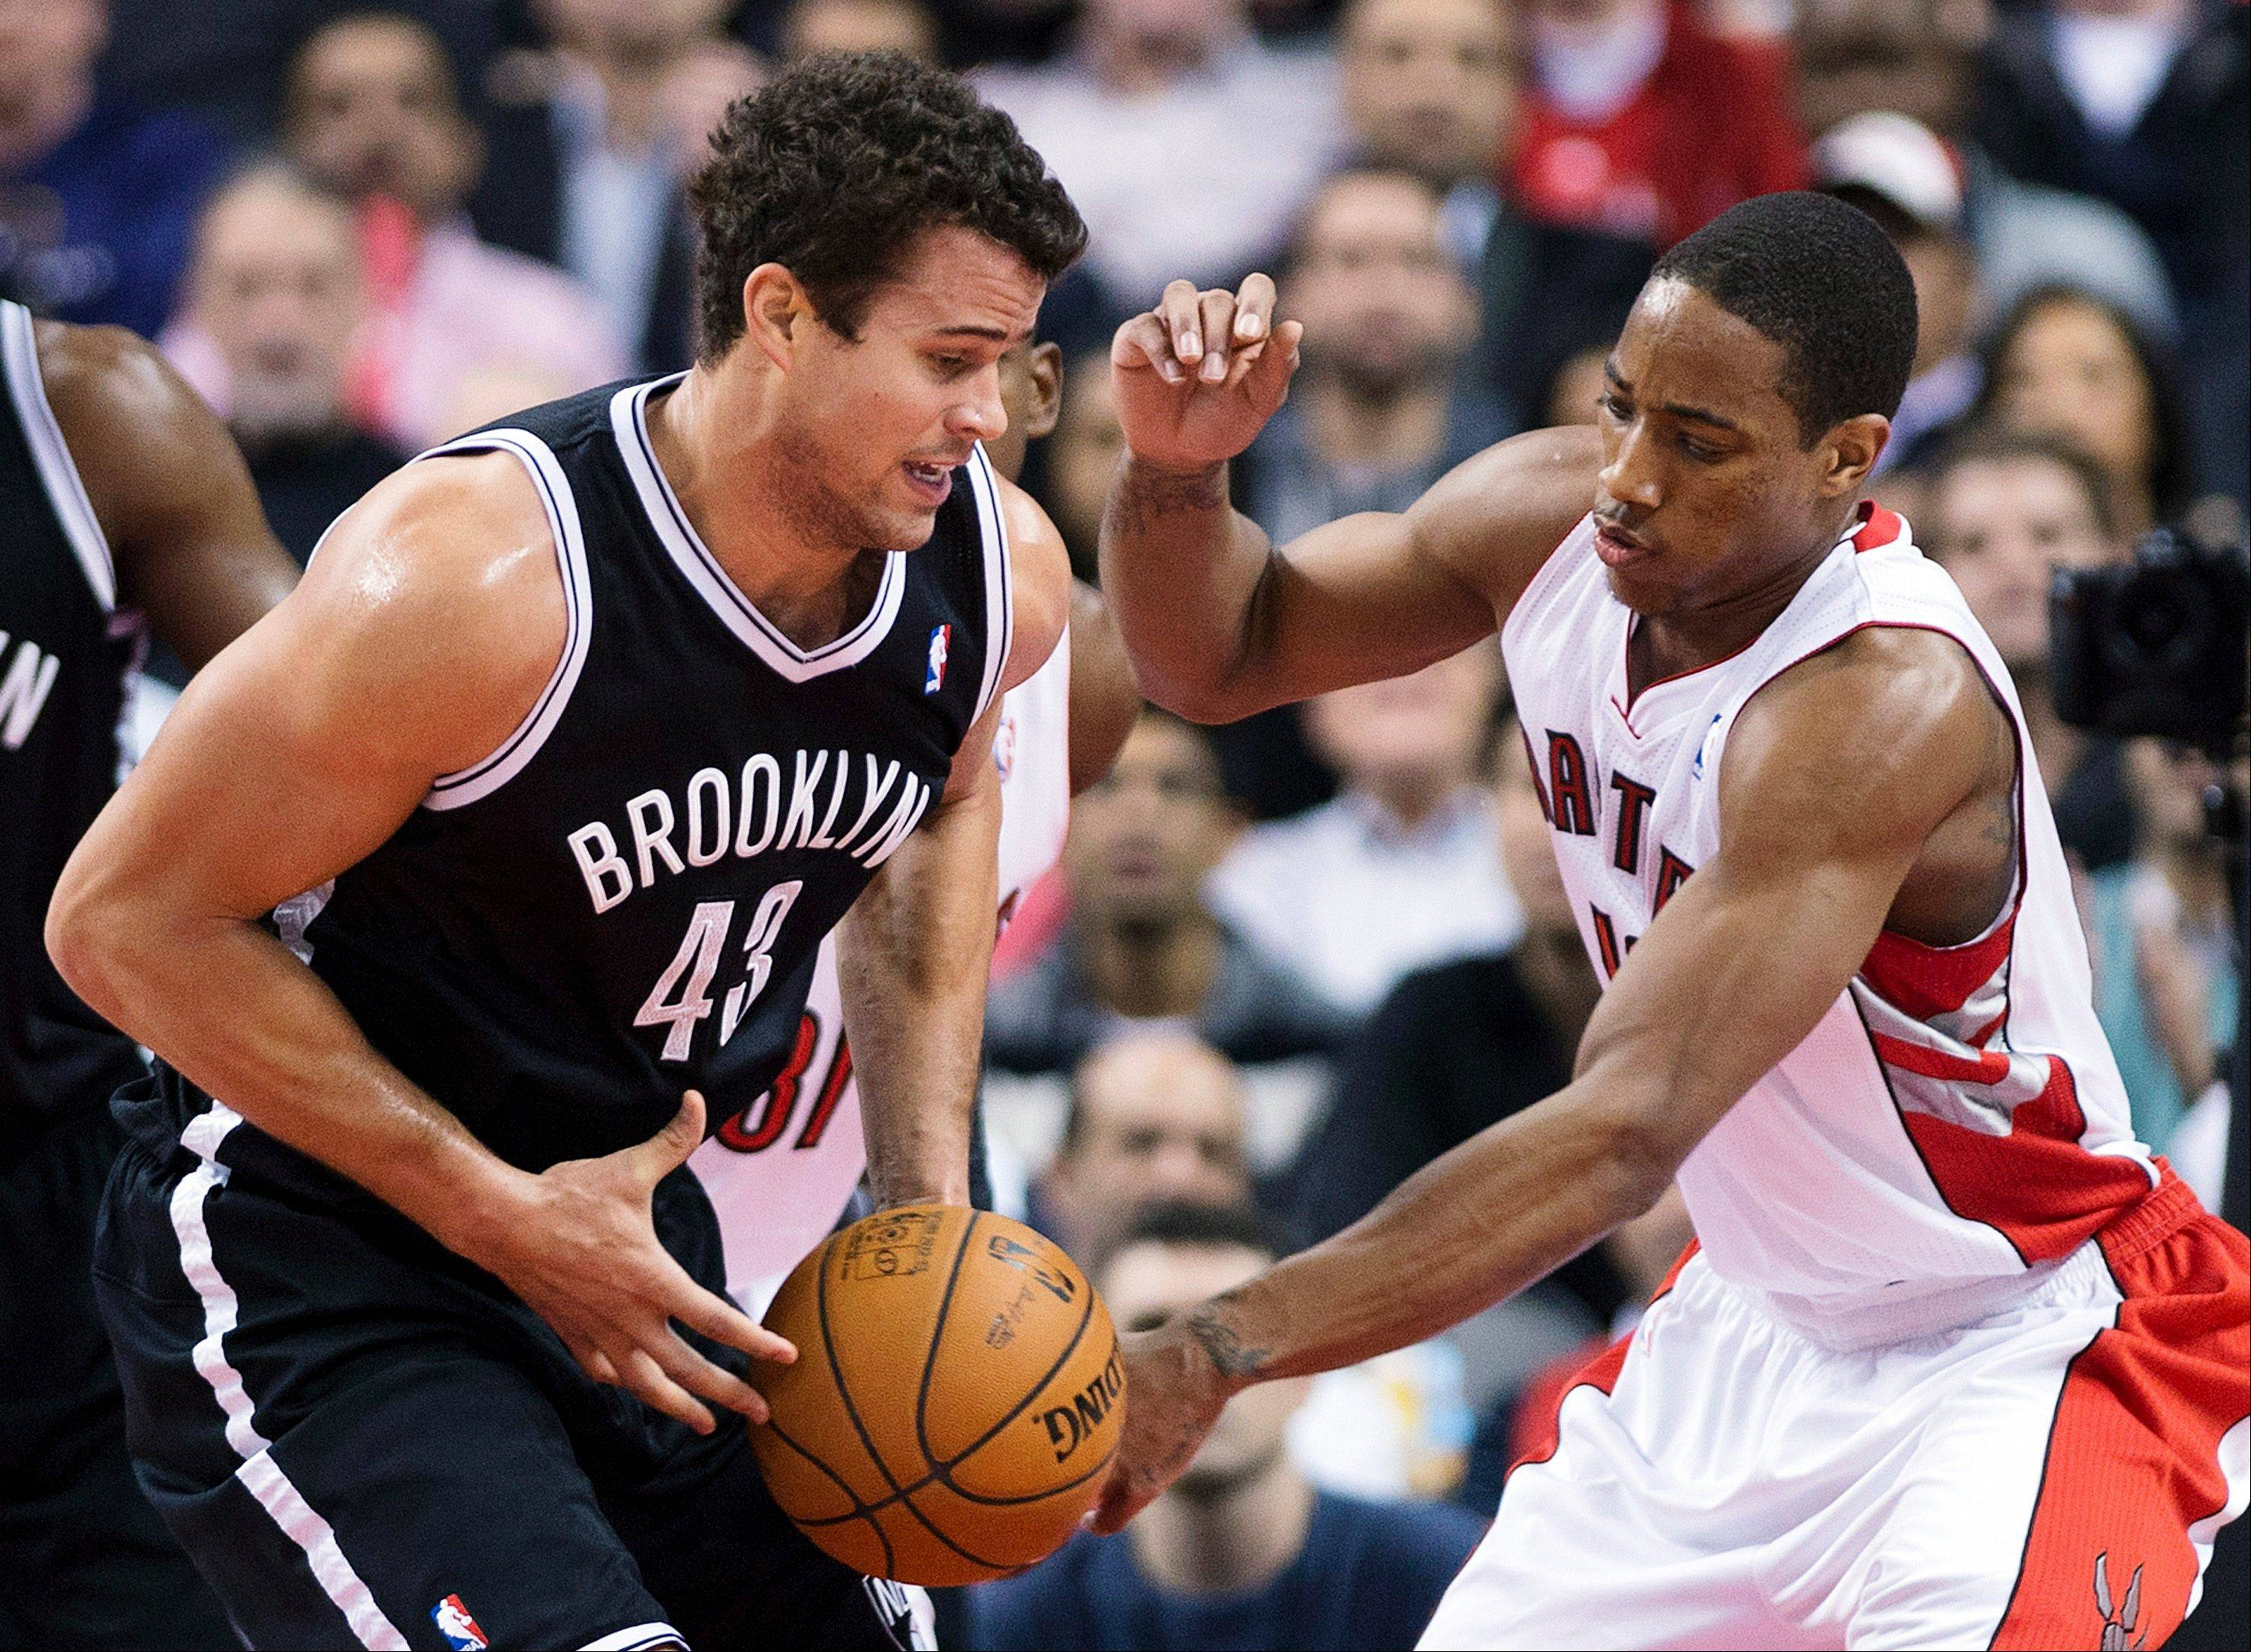 Joe Johnson scores 23 as Nets beat Raptors 94-88